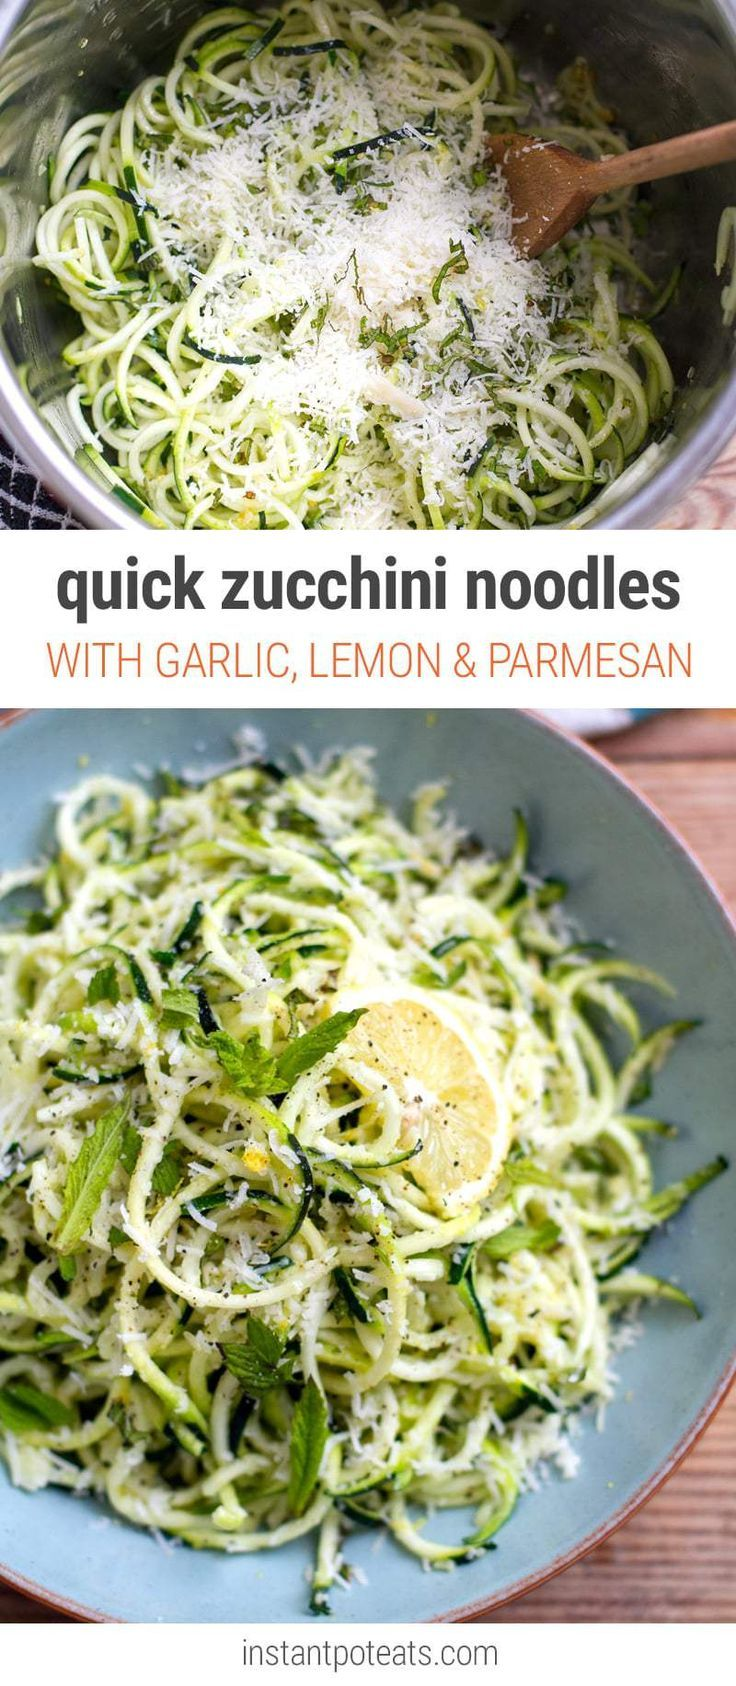 10-Minute Zucchini Noodles With Garlic, Lemon, Mint & Parmesan - easily made using the Instant Pot or on the stove. This dish is gluten-free, low-carb and vegetarian friendly.